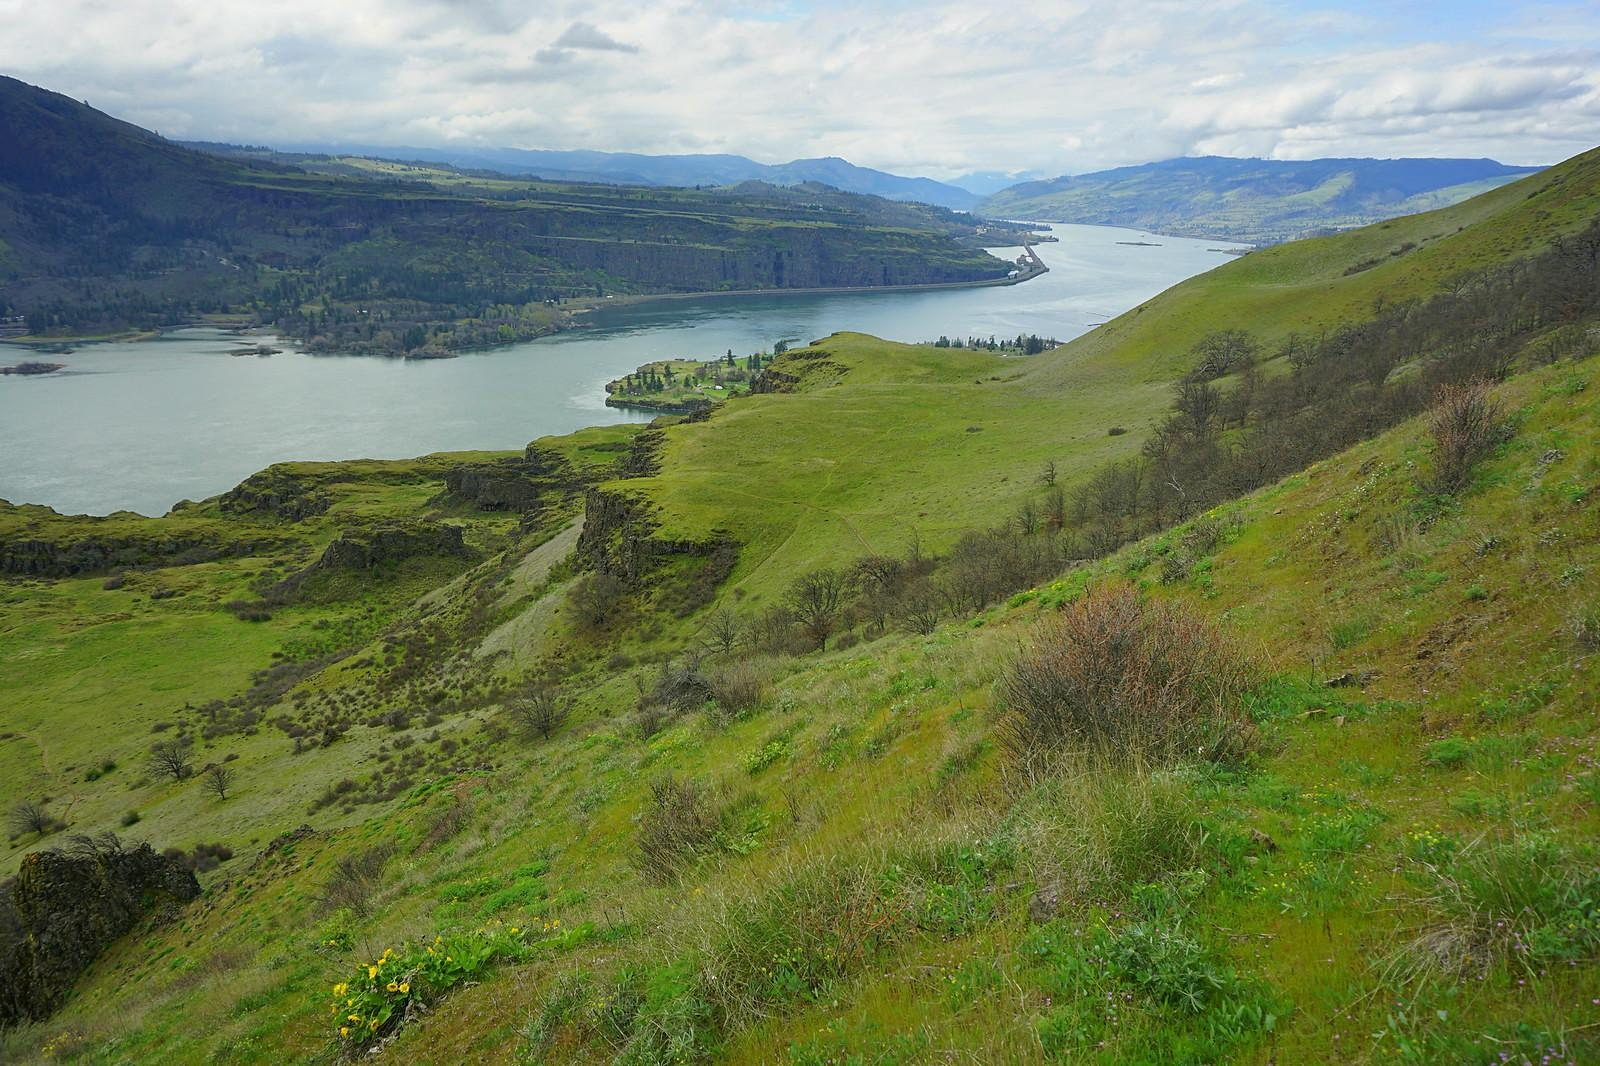 CANCELLED: Gorge Towns to Trails at Lyle Cherry Orchard, WA